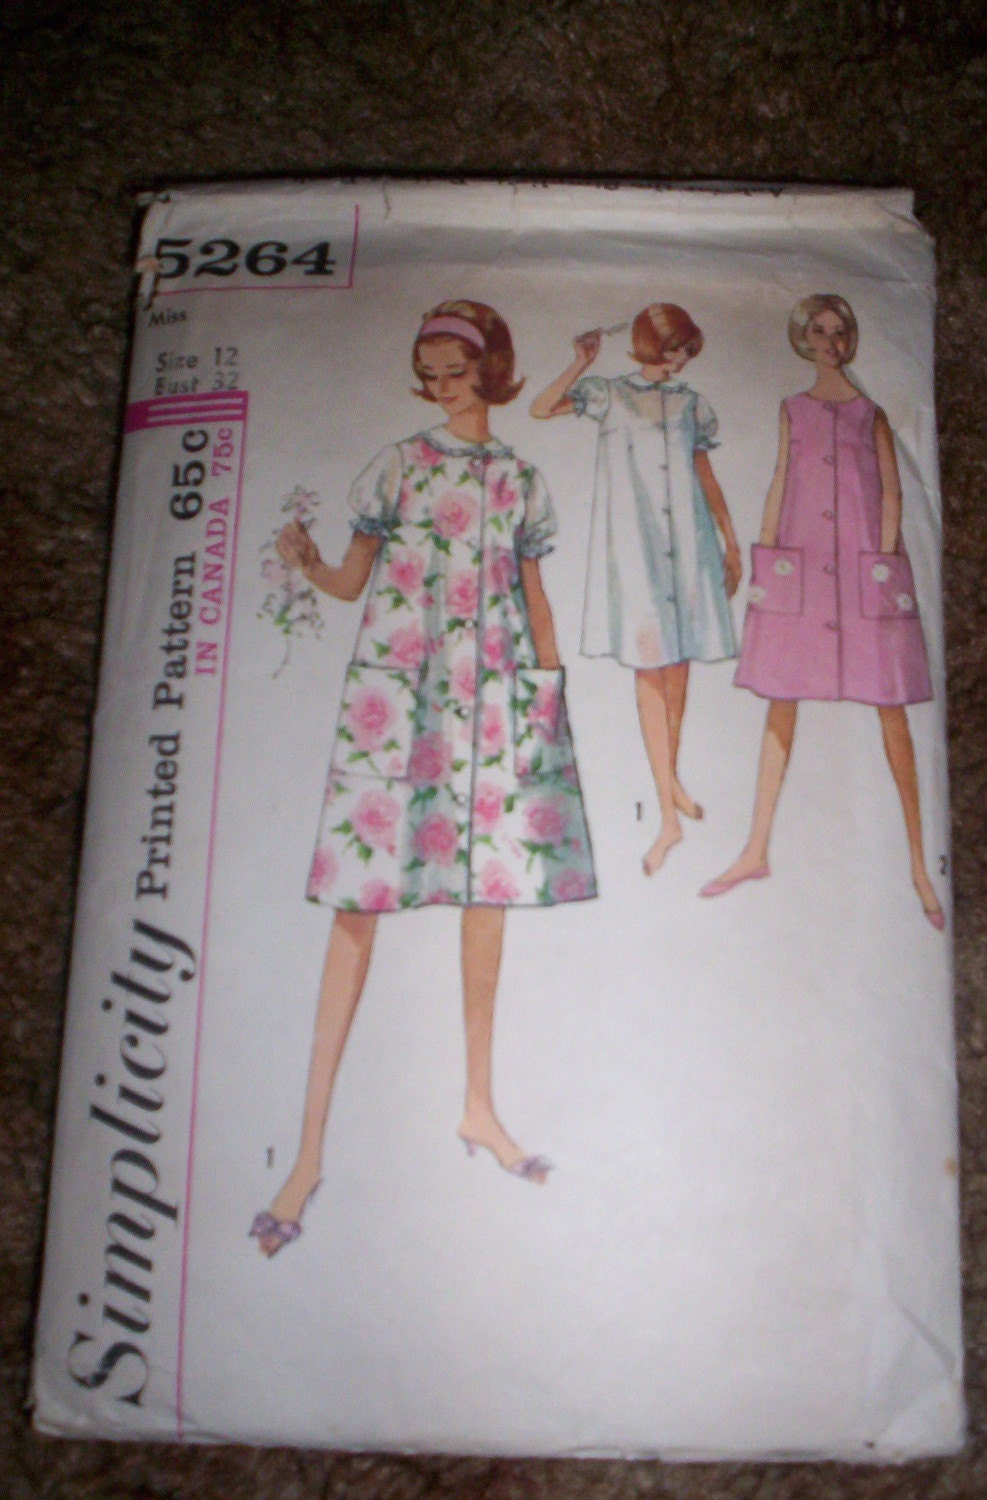 Women's Vintage Simplicity Sewing Patterns, Simplicity patterns at